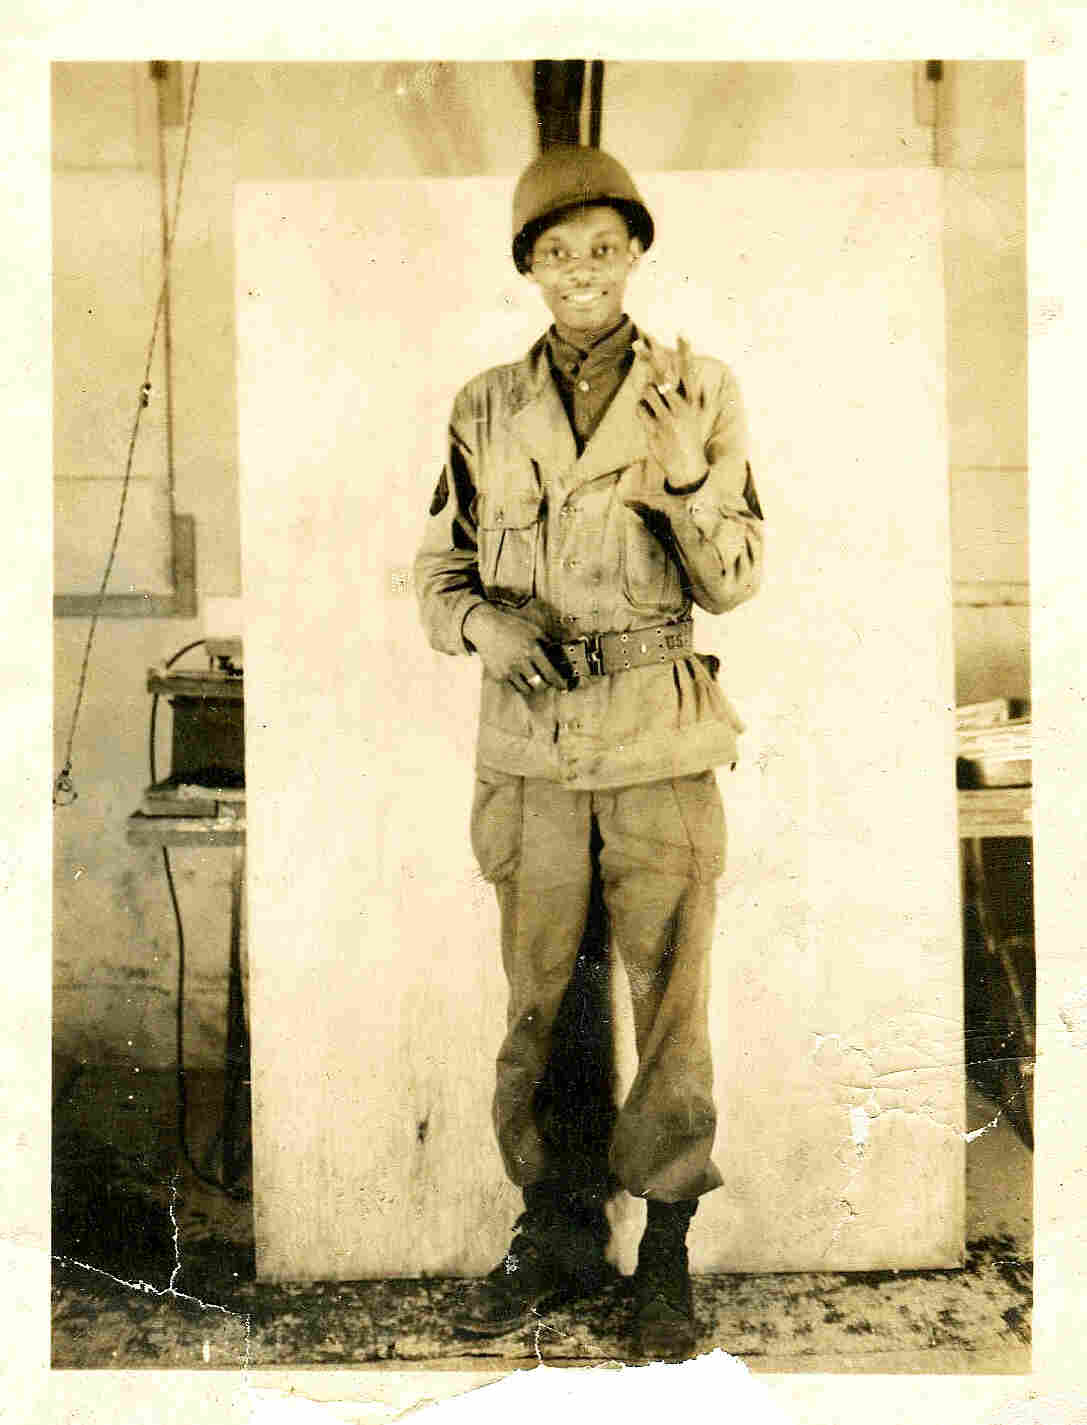 Rollins Edwards as a young soldier in 1945 at Clark Air Base in the Philippines.